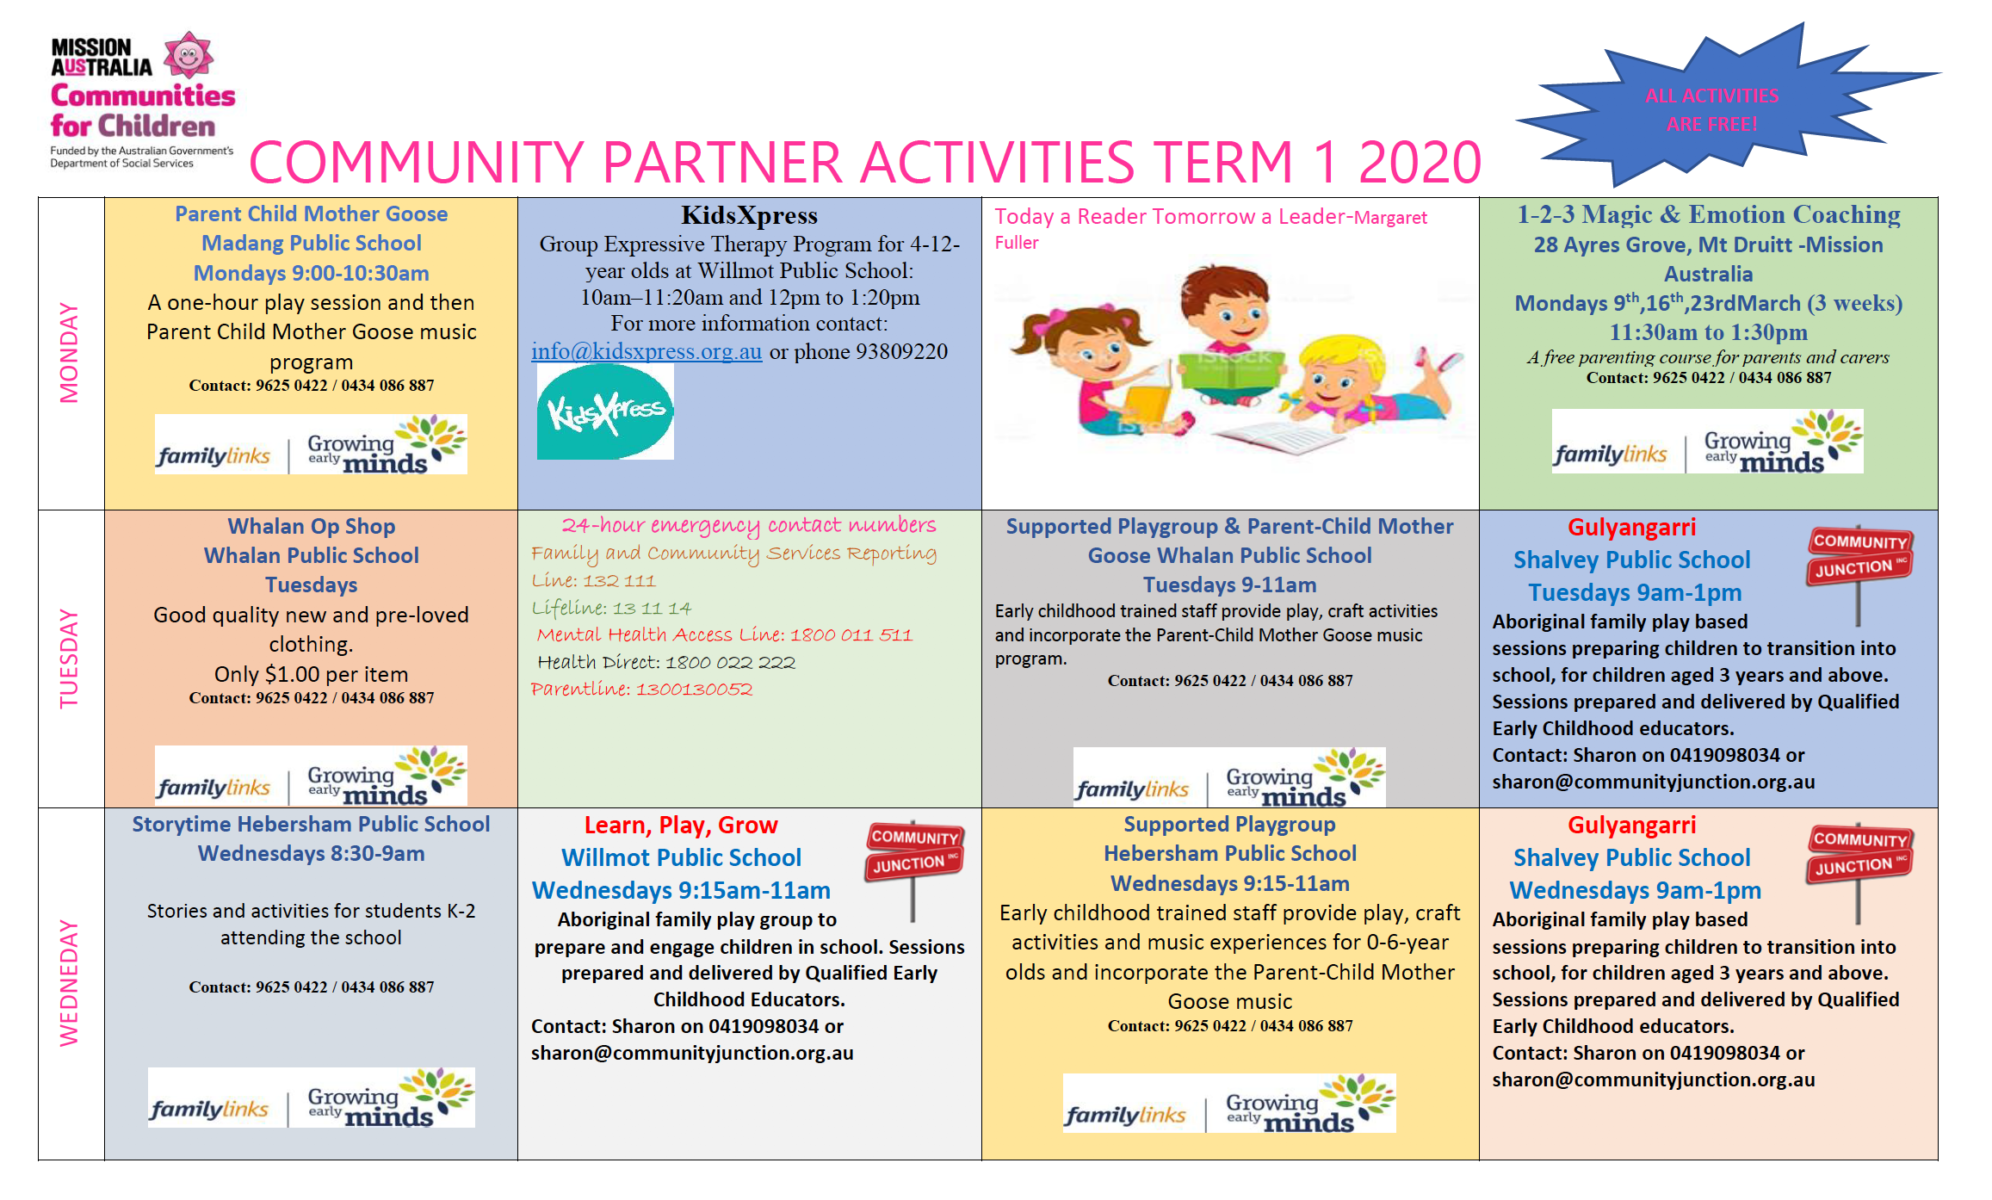 Communities For Children What's On Term 1 2020 Calendar